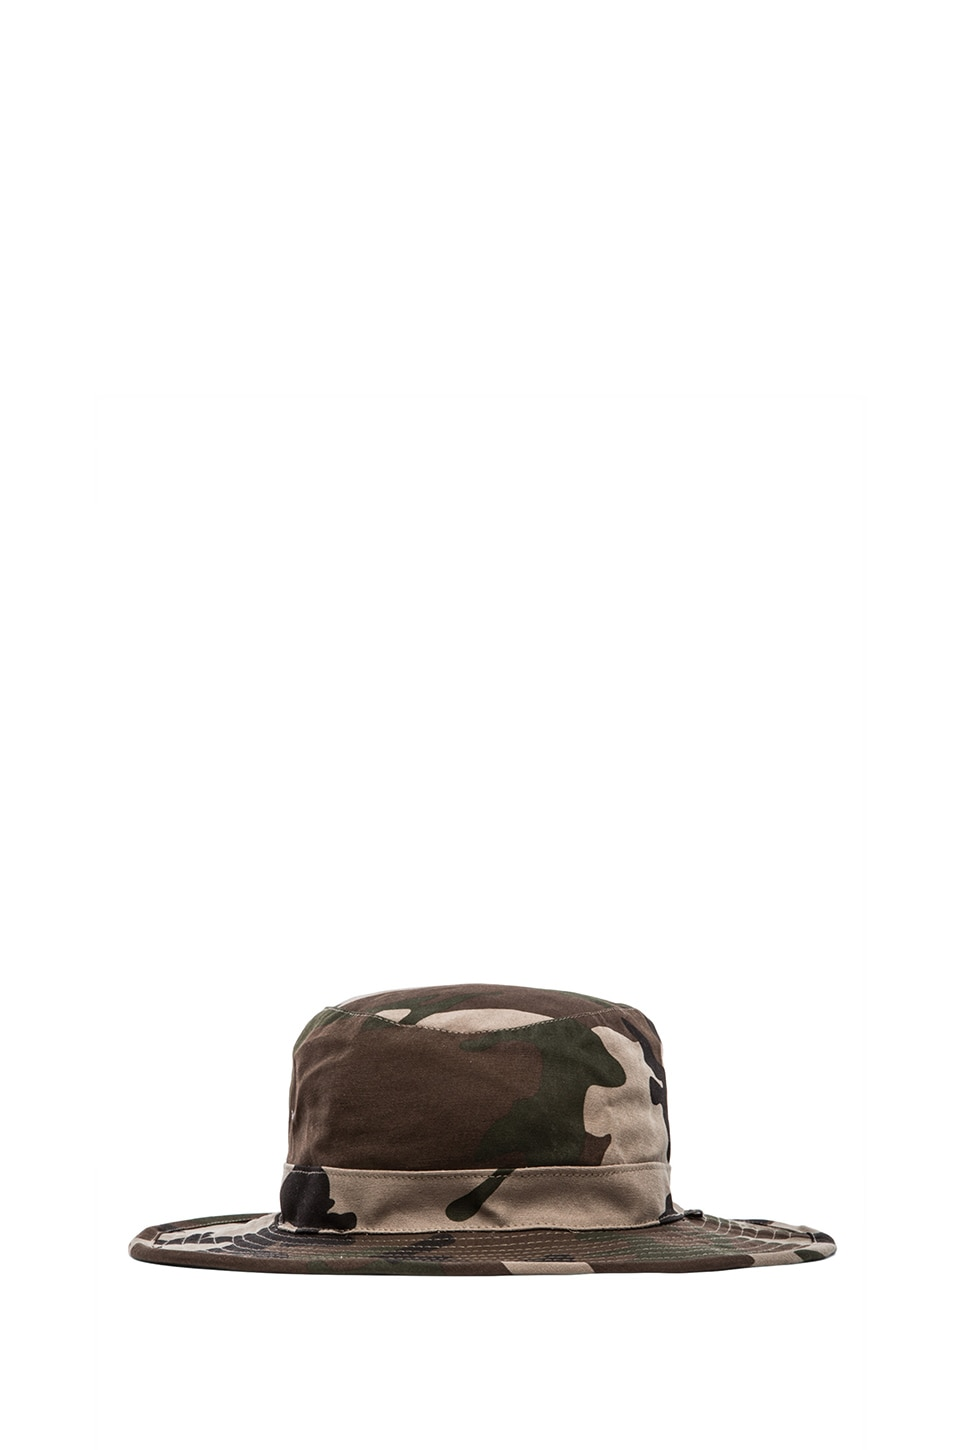 Obey Sierra Hat in Field Camo